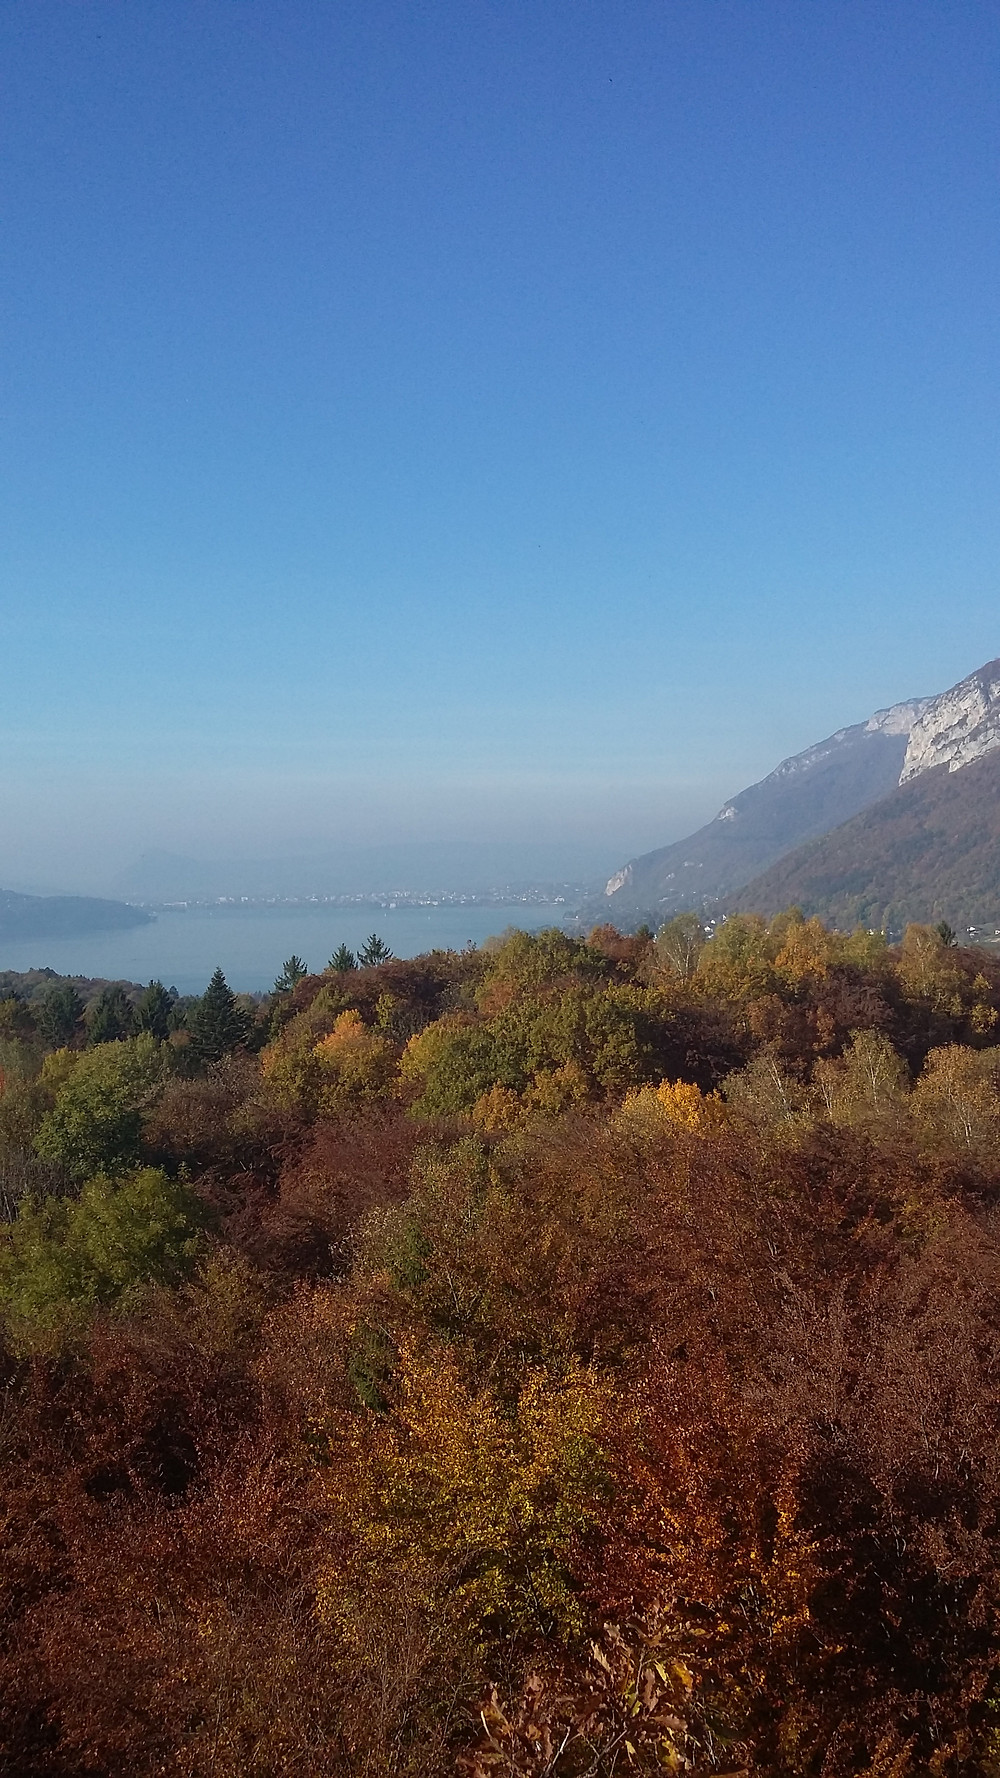 lake annecy during the fall